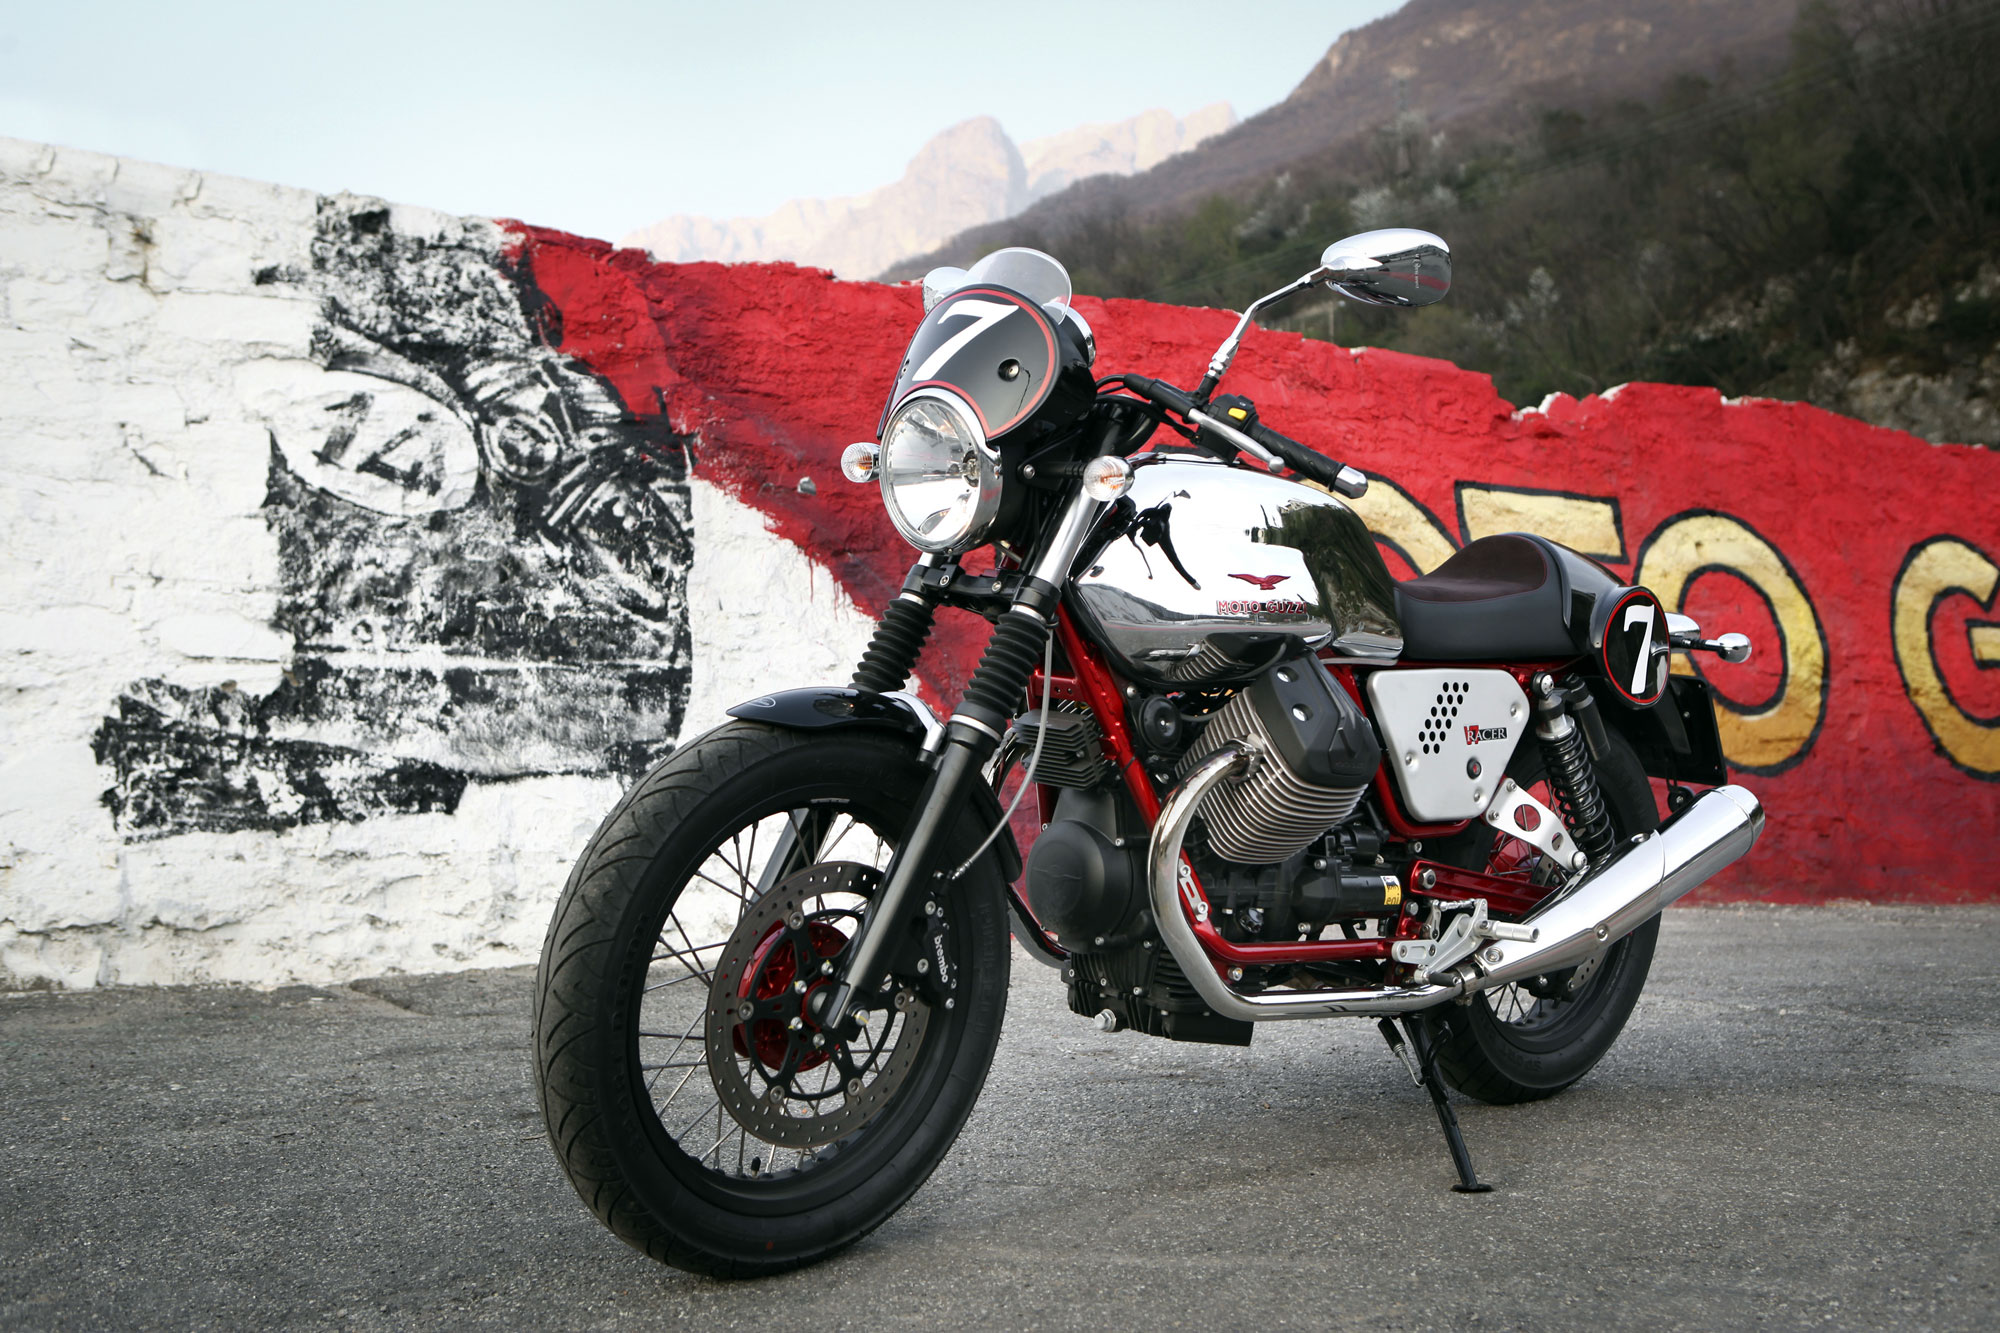 Moto Guzzi V7 Racer Limited Edition 2011 images #109593